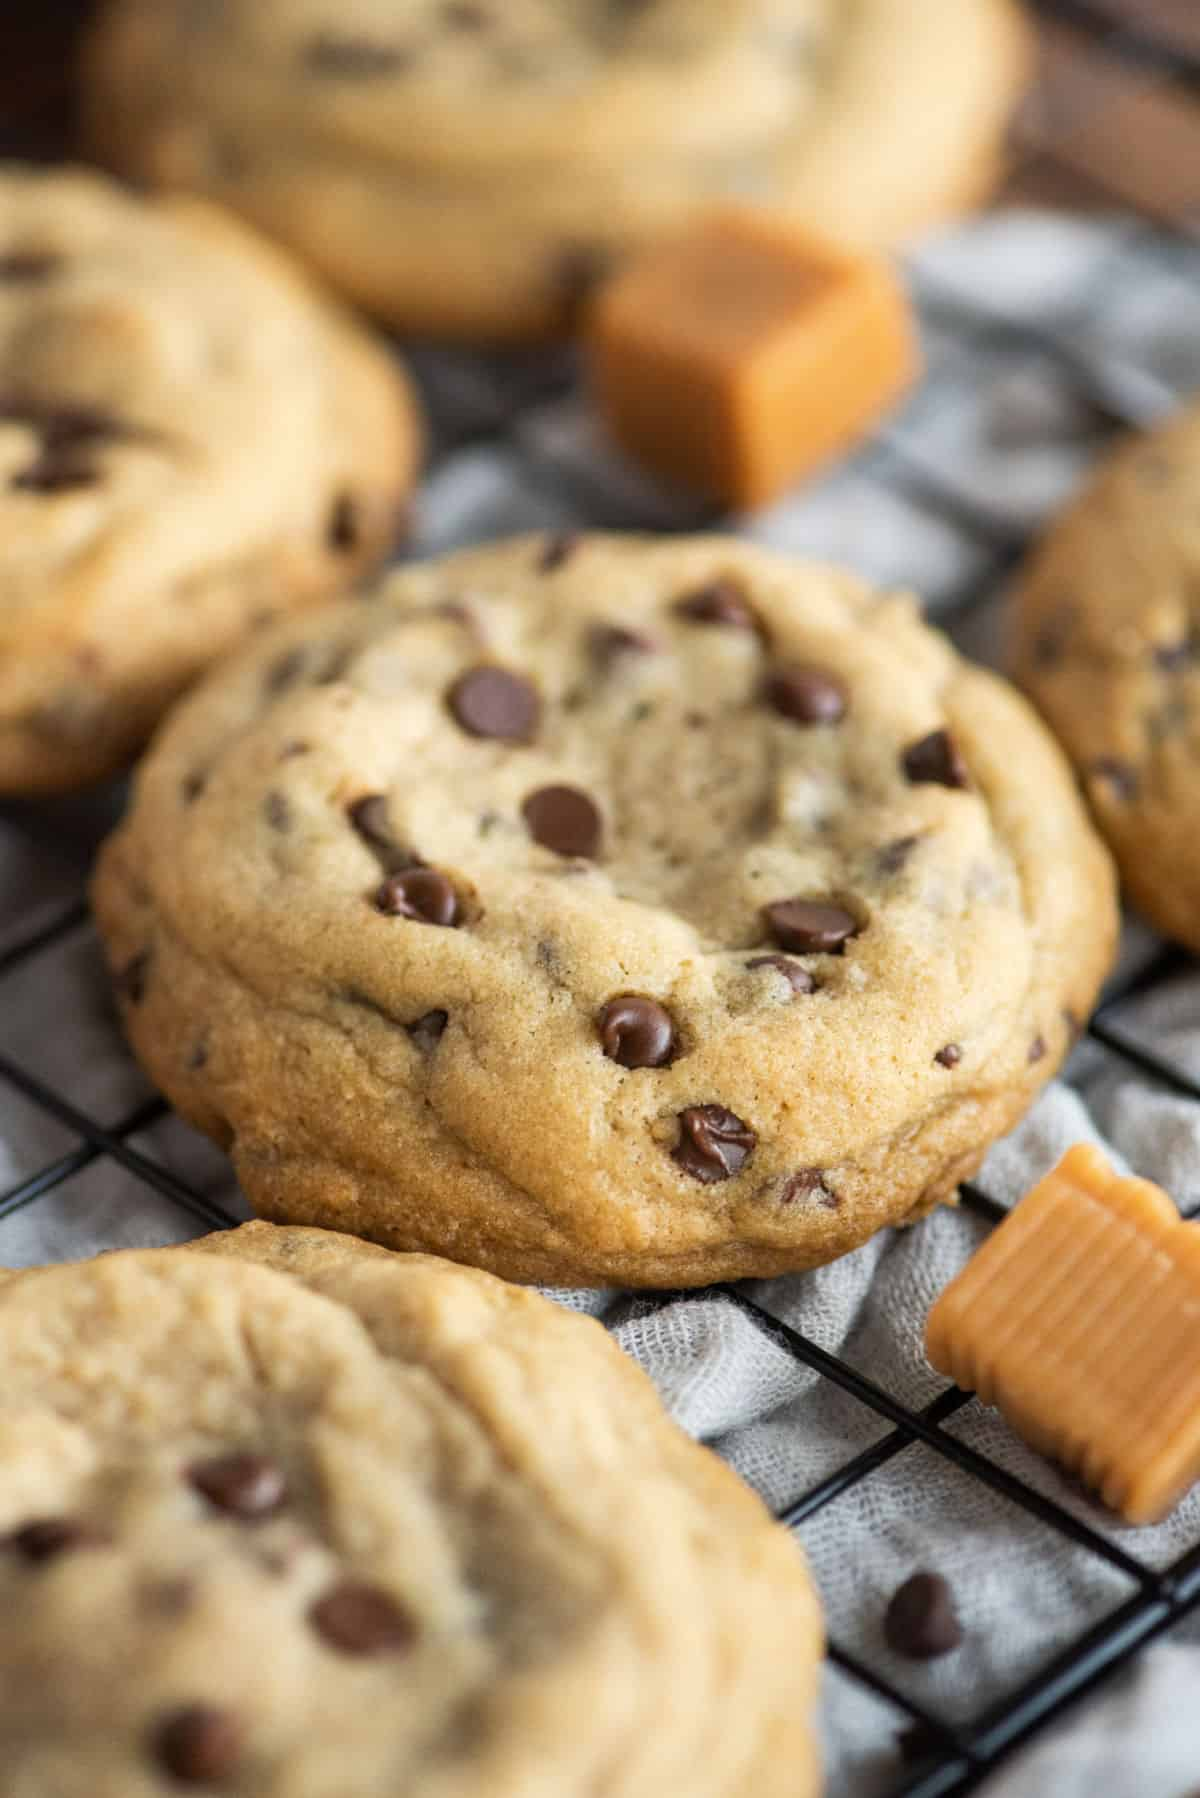 Caramel stuffed chocolate chip cookies on wire rack to cool.